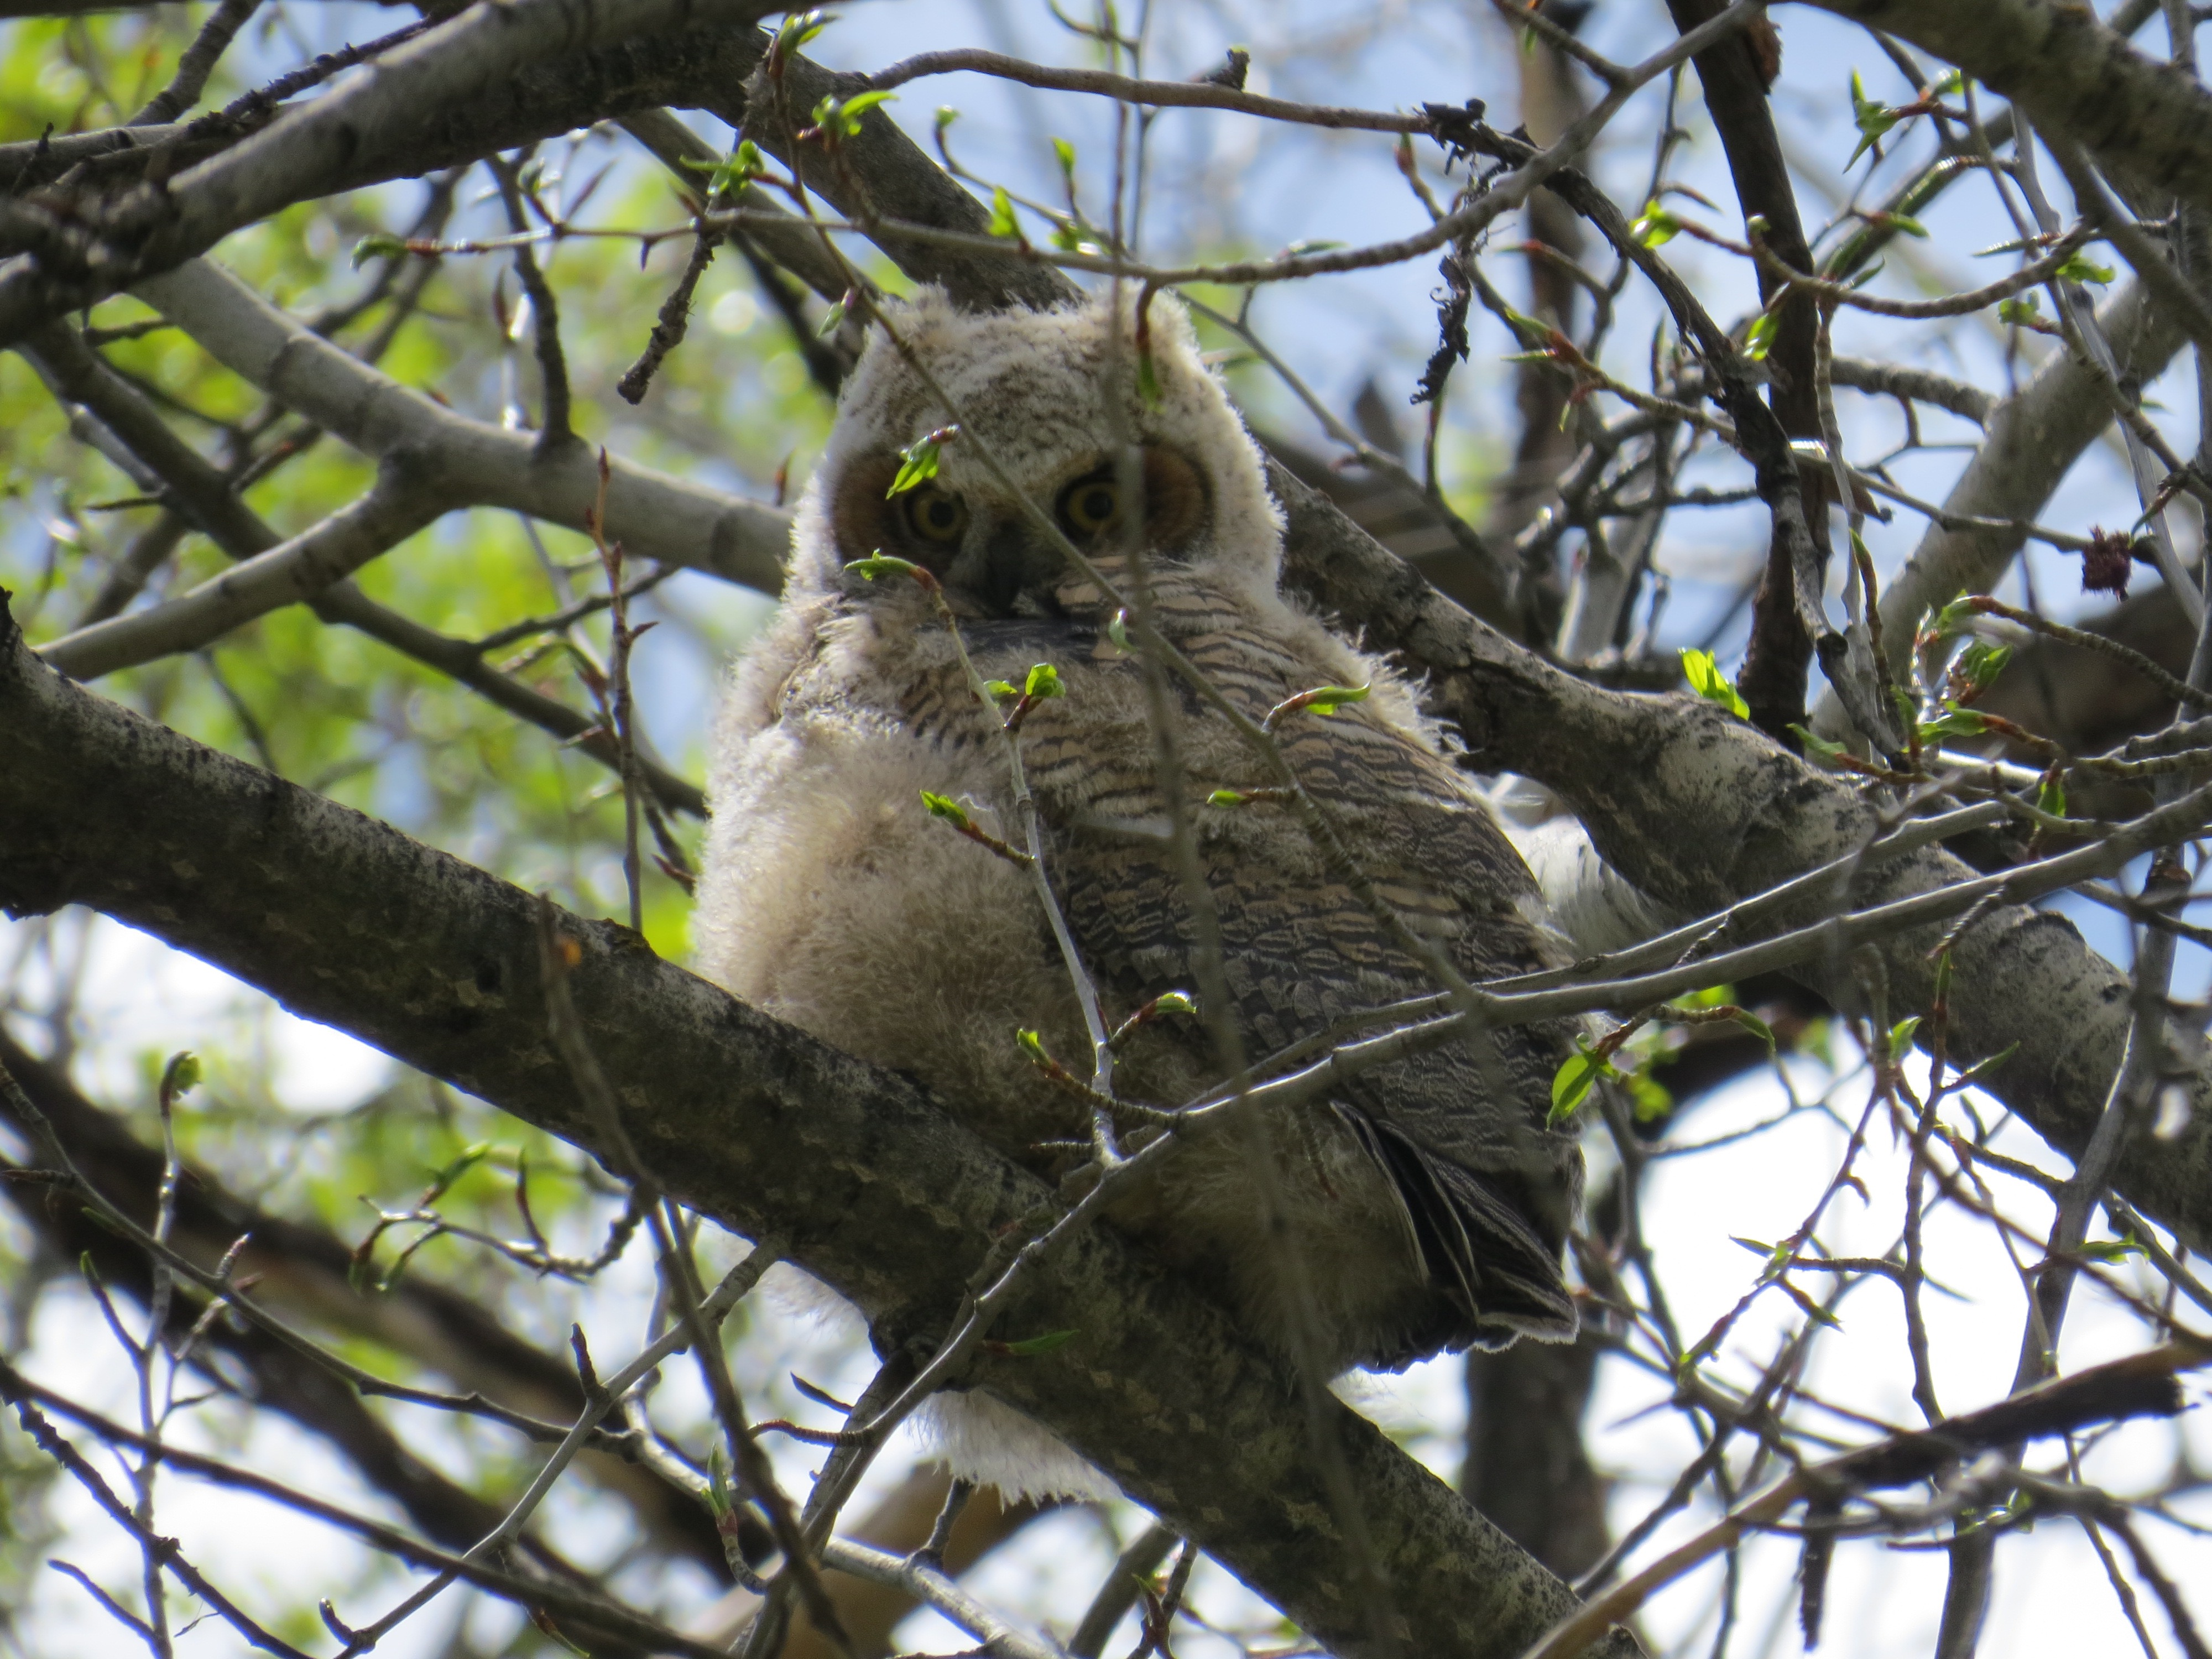 THE GREAT HORNED OWLET IS GROWING AND CAN EVEN FLY. MOM AND DAD ARE INTO TOUGH LOVE AND ARE SLOWLY WEANING  THE BABY AWAY FROM THEM.